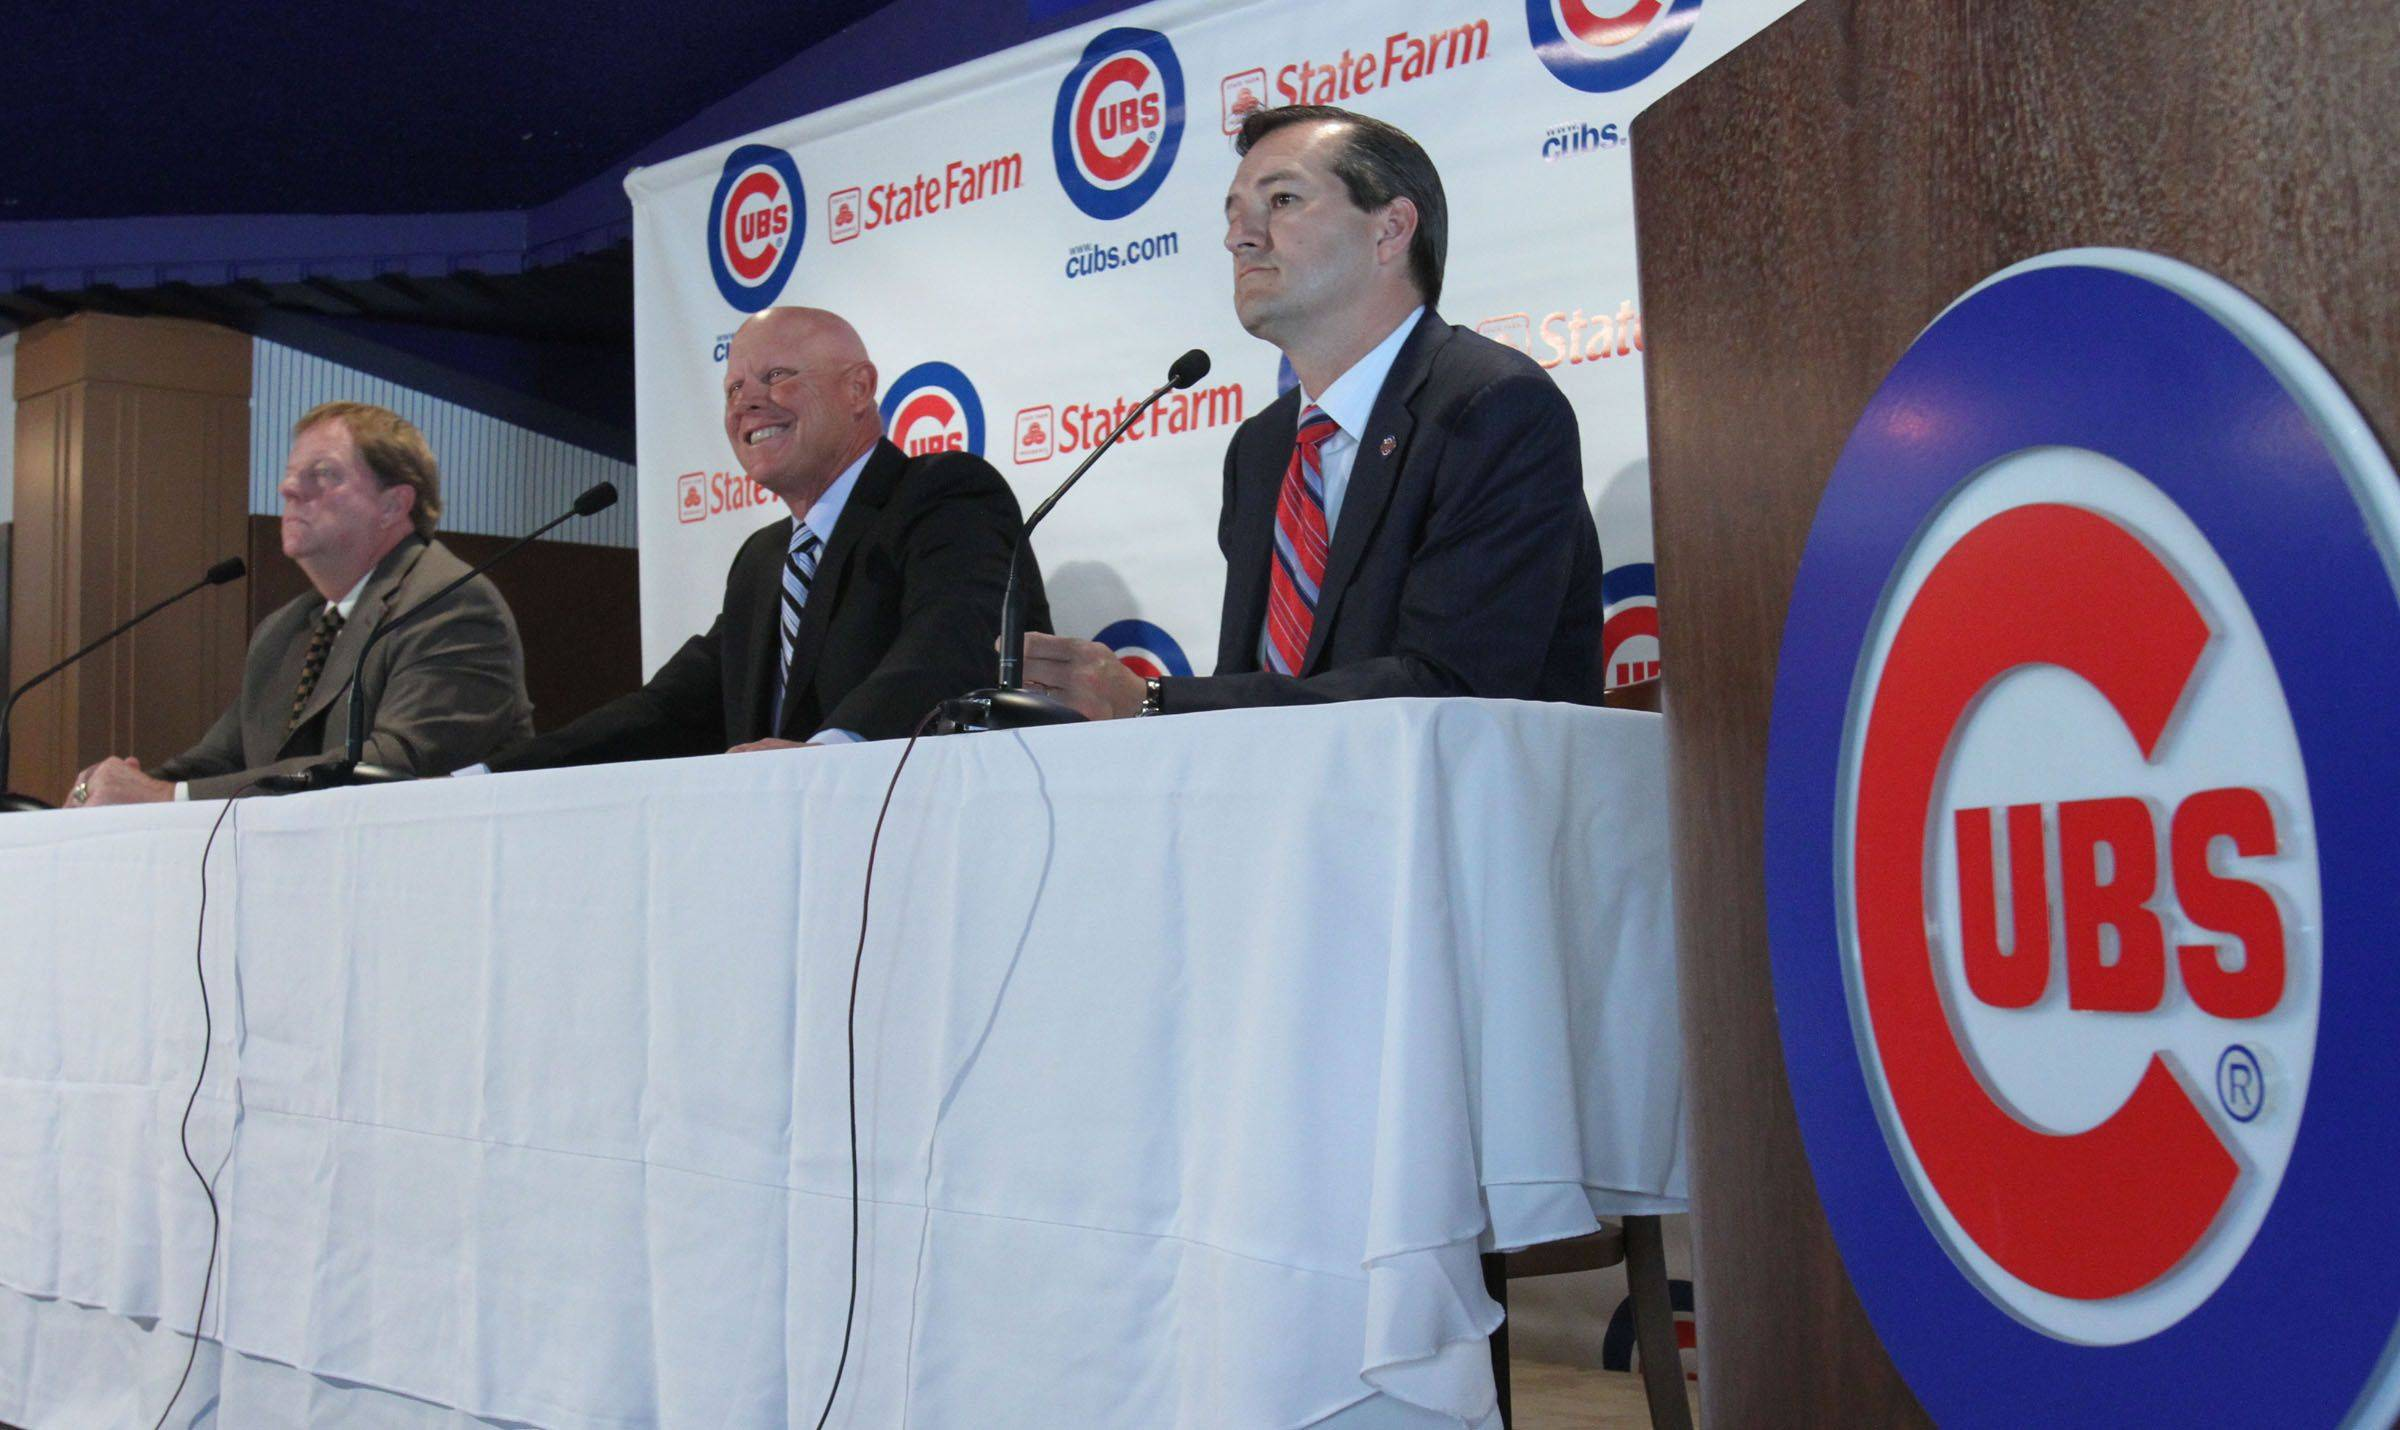 Mike Quade is name the Chicago Cubs manager at A press conference with Chicago Cubs owner Tom Ricketts and Cubs General Manager Jim Hendry at Wrigley Field in Chicago on Tuesday, October 19.